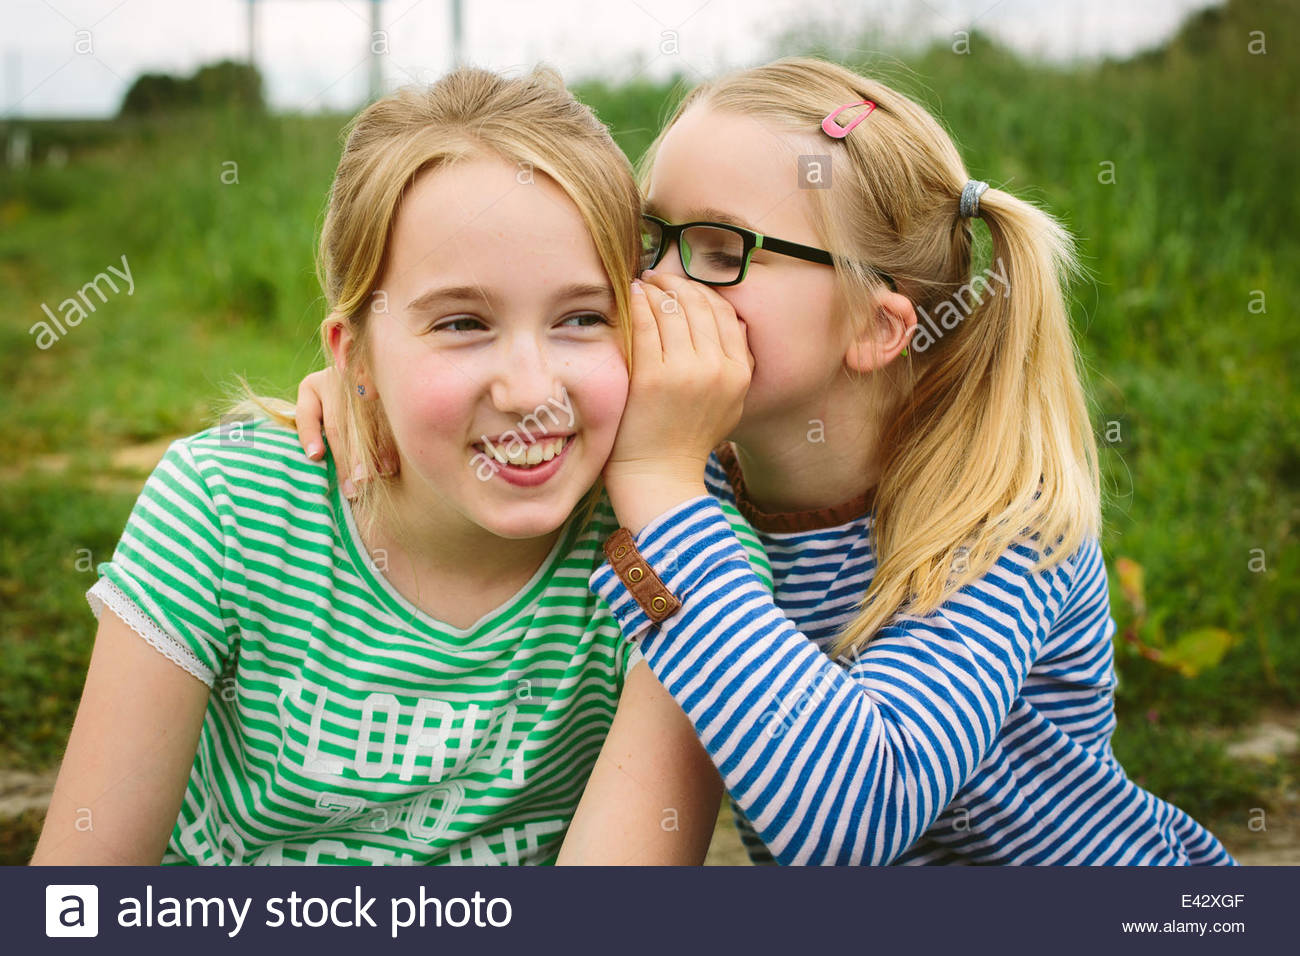 Nine year old girl whispering to sister in field - Stock Image